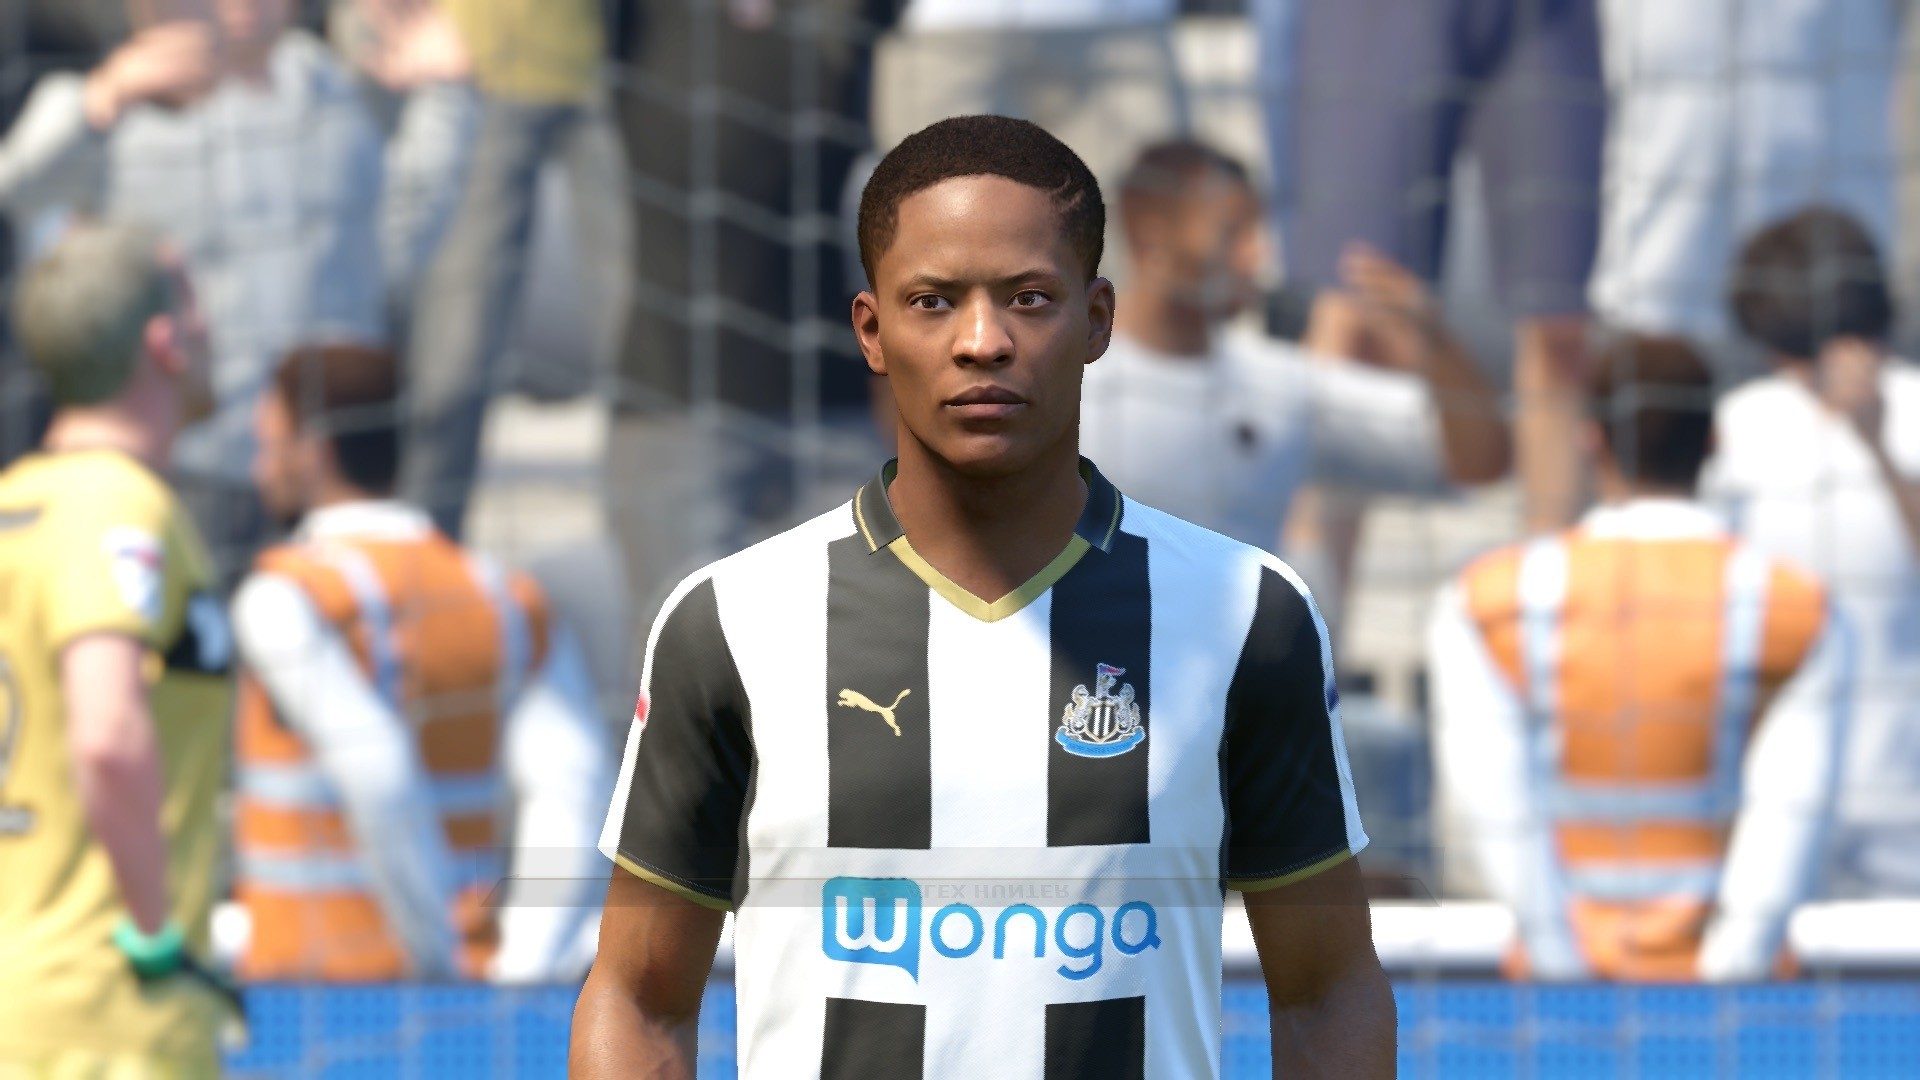 People are mad they have to play a black character in FIFA 17